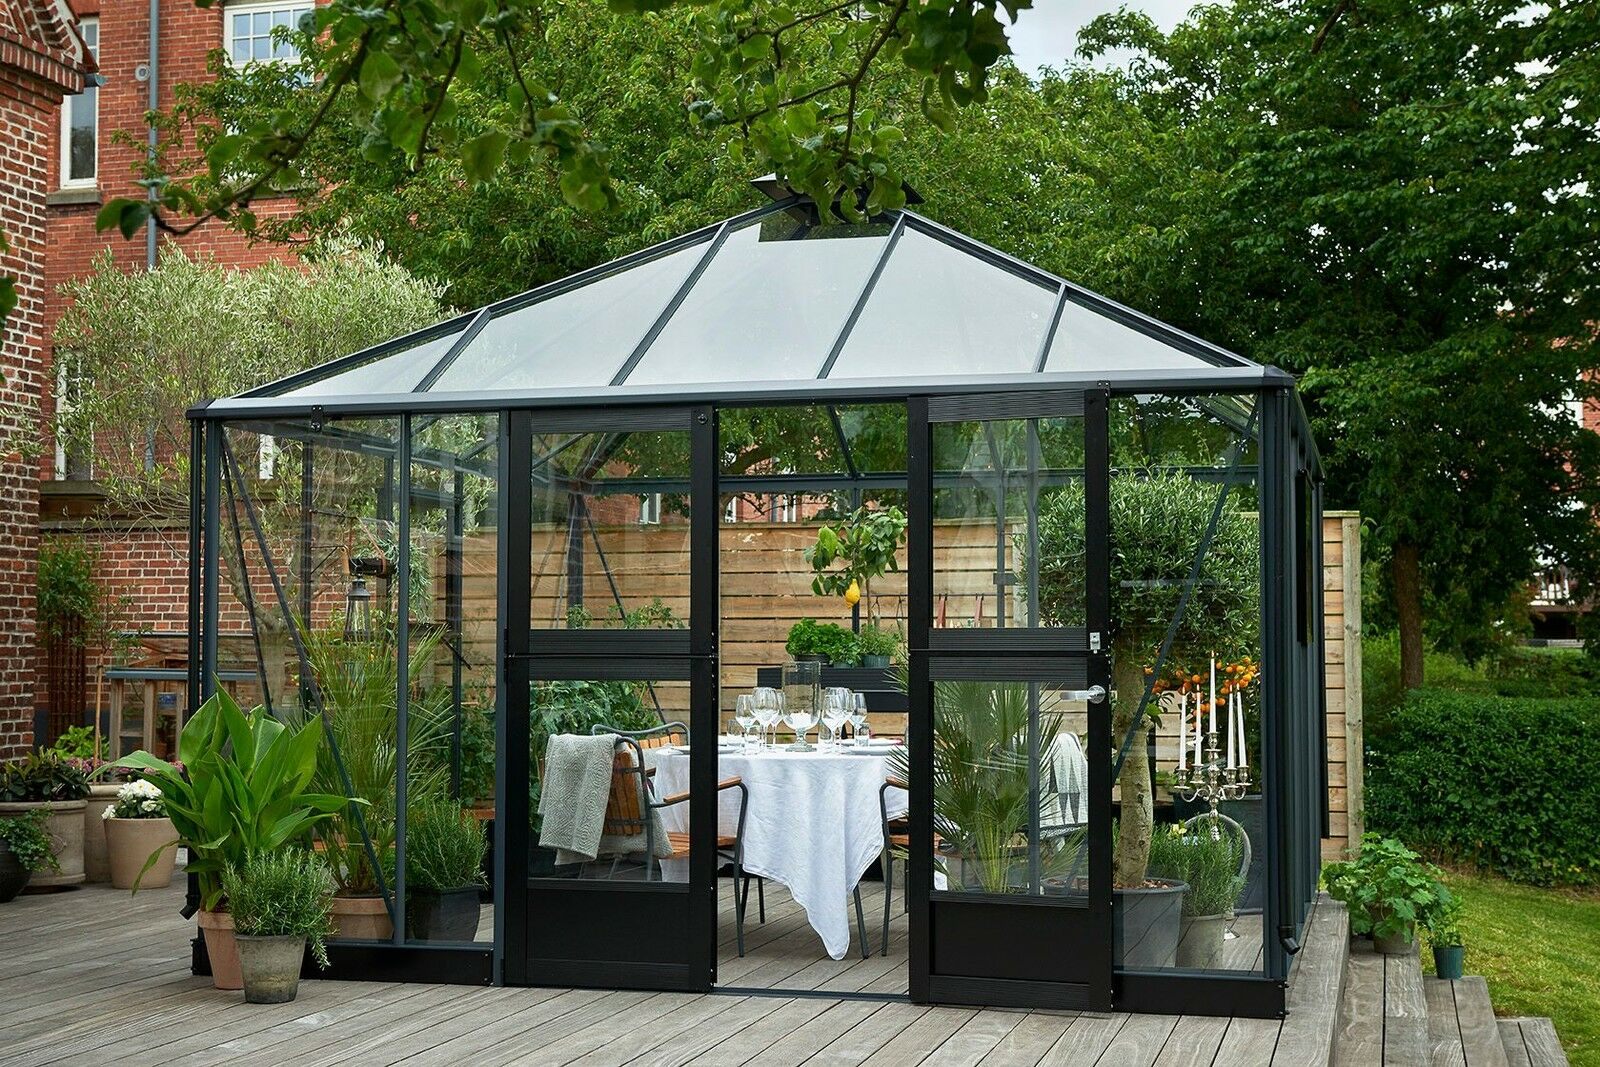 juliana gew chshaus oase 13 5 m glas esg 3 mm anthrazit pavillon gartenhaus ebay. Black Bedroom Furniture Sets. Home Design Ideas